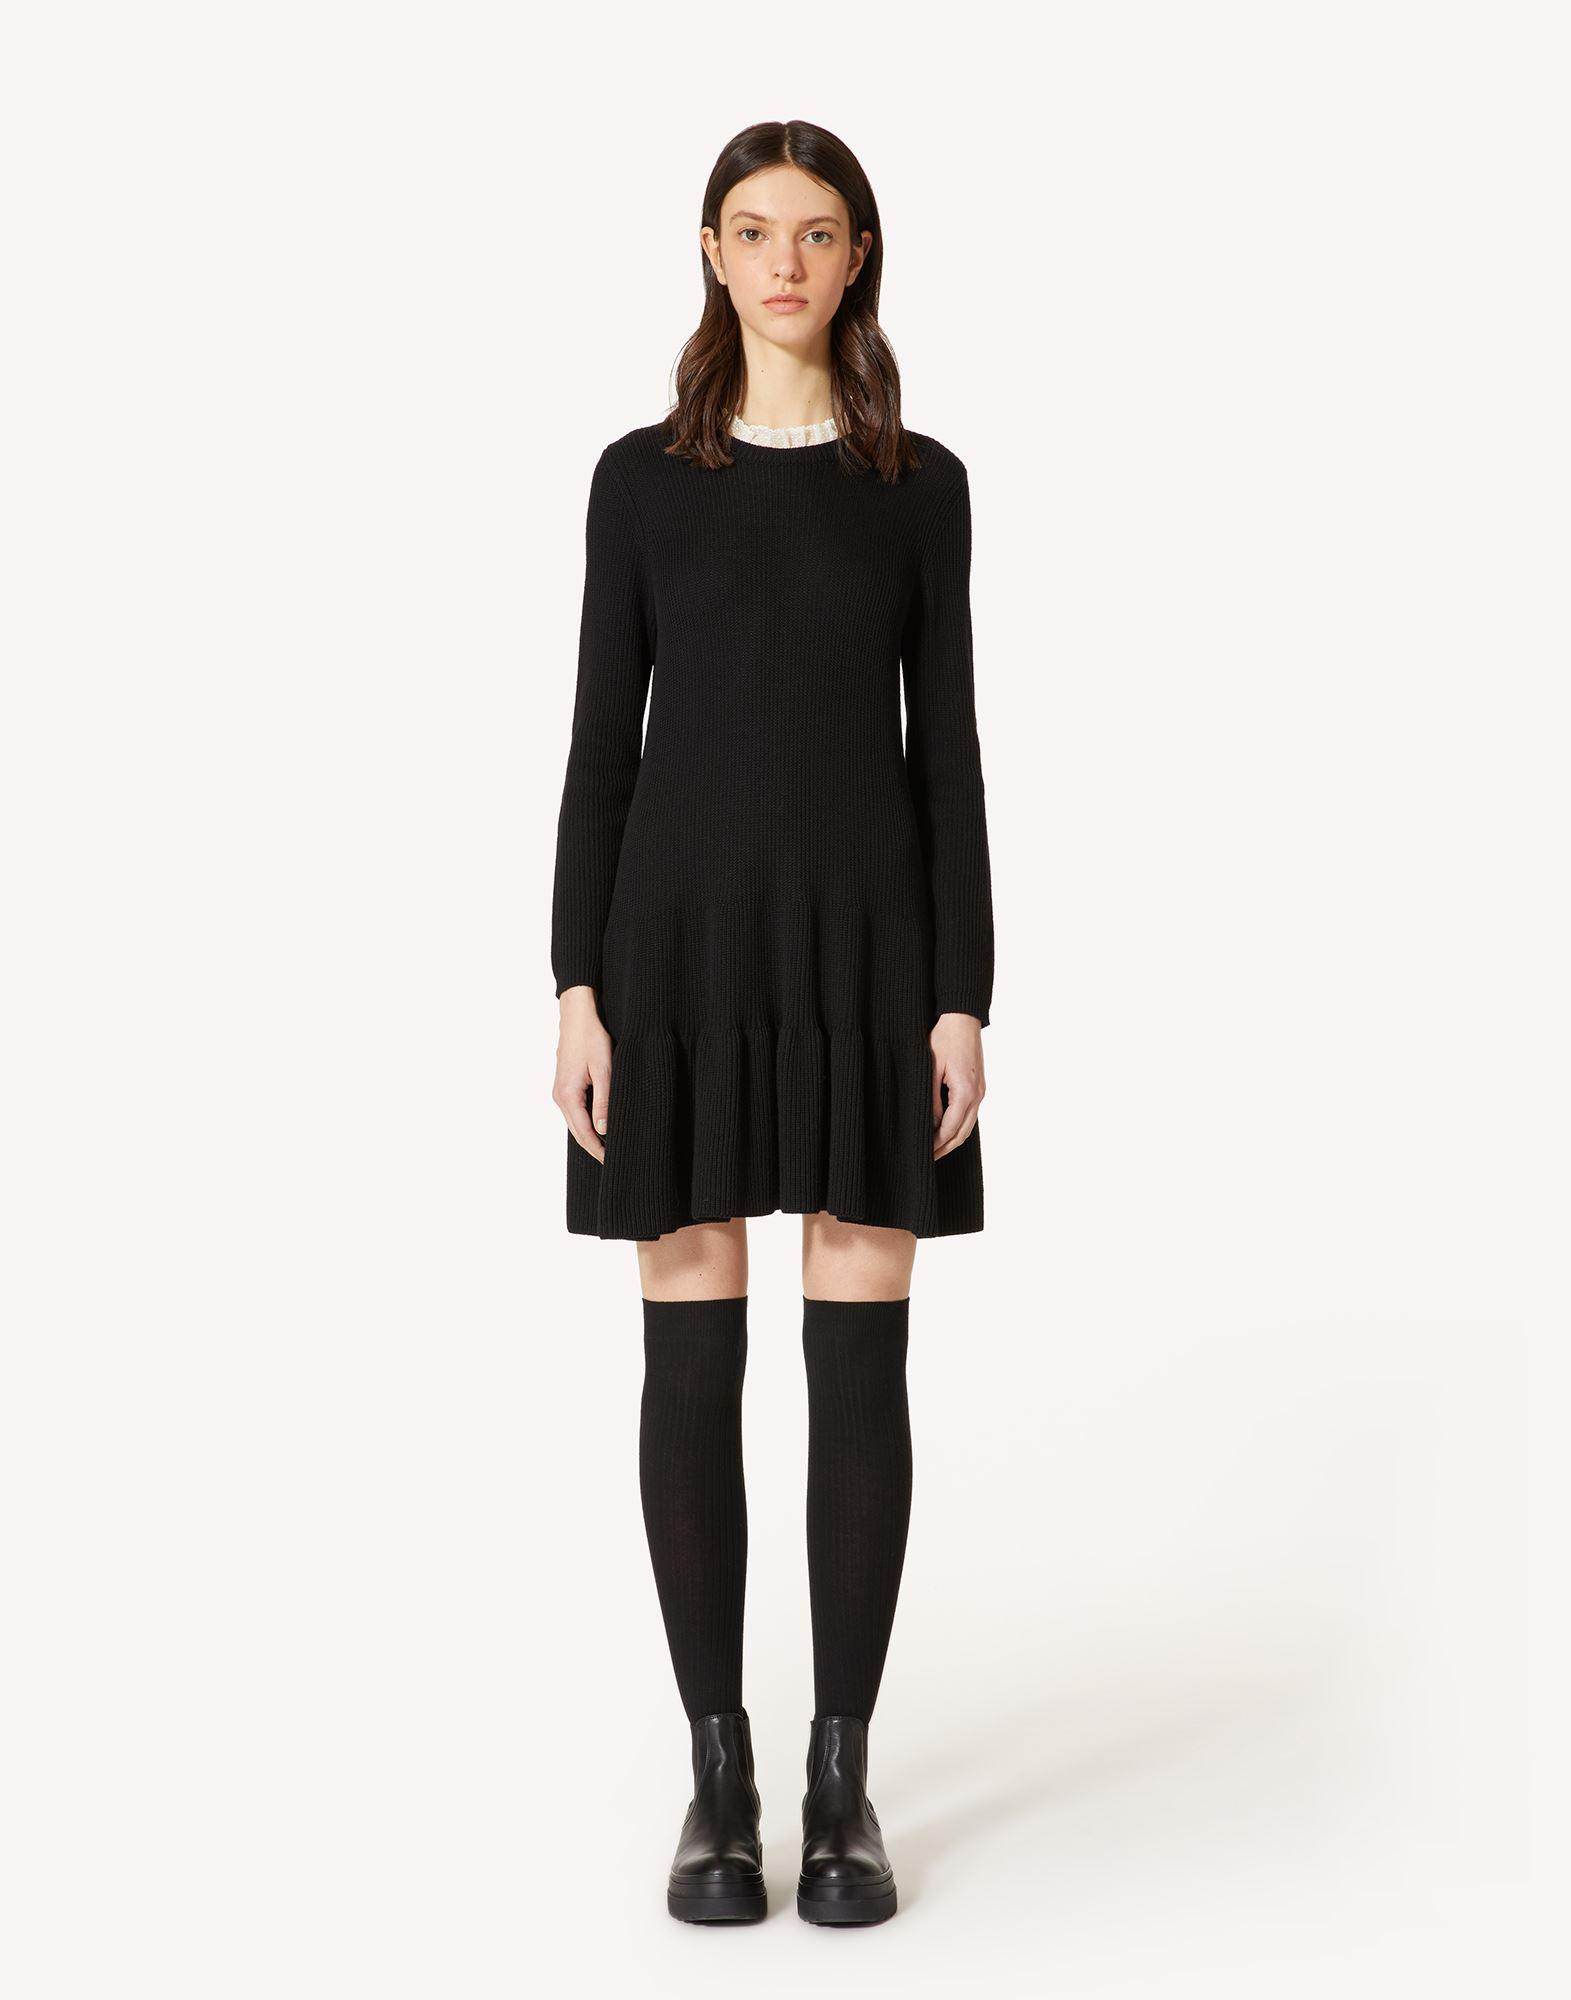 WOOL KNIT DRESS WITH LACE